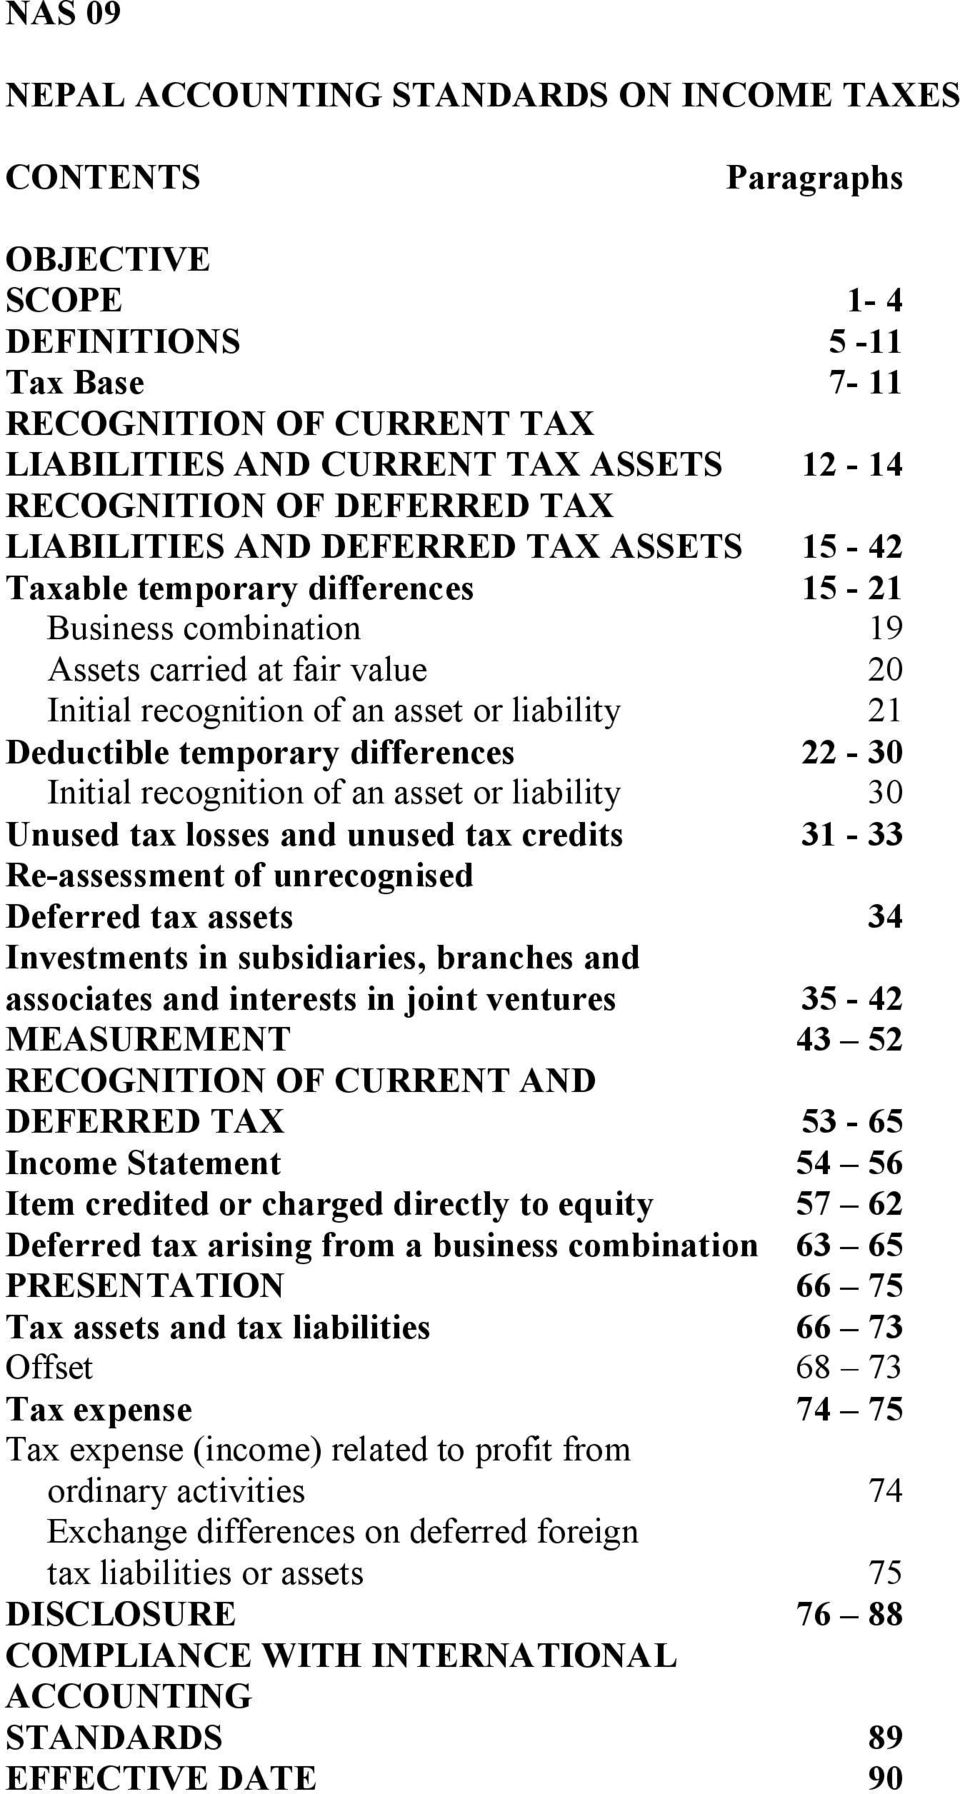 liability 21 Deductible temporary differences 22-30 Initial recognition of an asset or liability 30 Unused tax losses and unused tax credits 31-33 Re-assessment of unrecognised Deferred tax assets 34